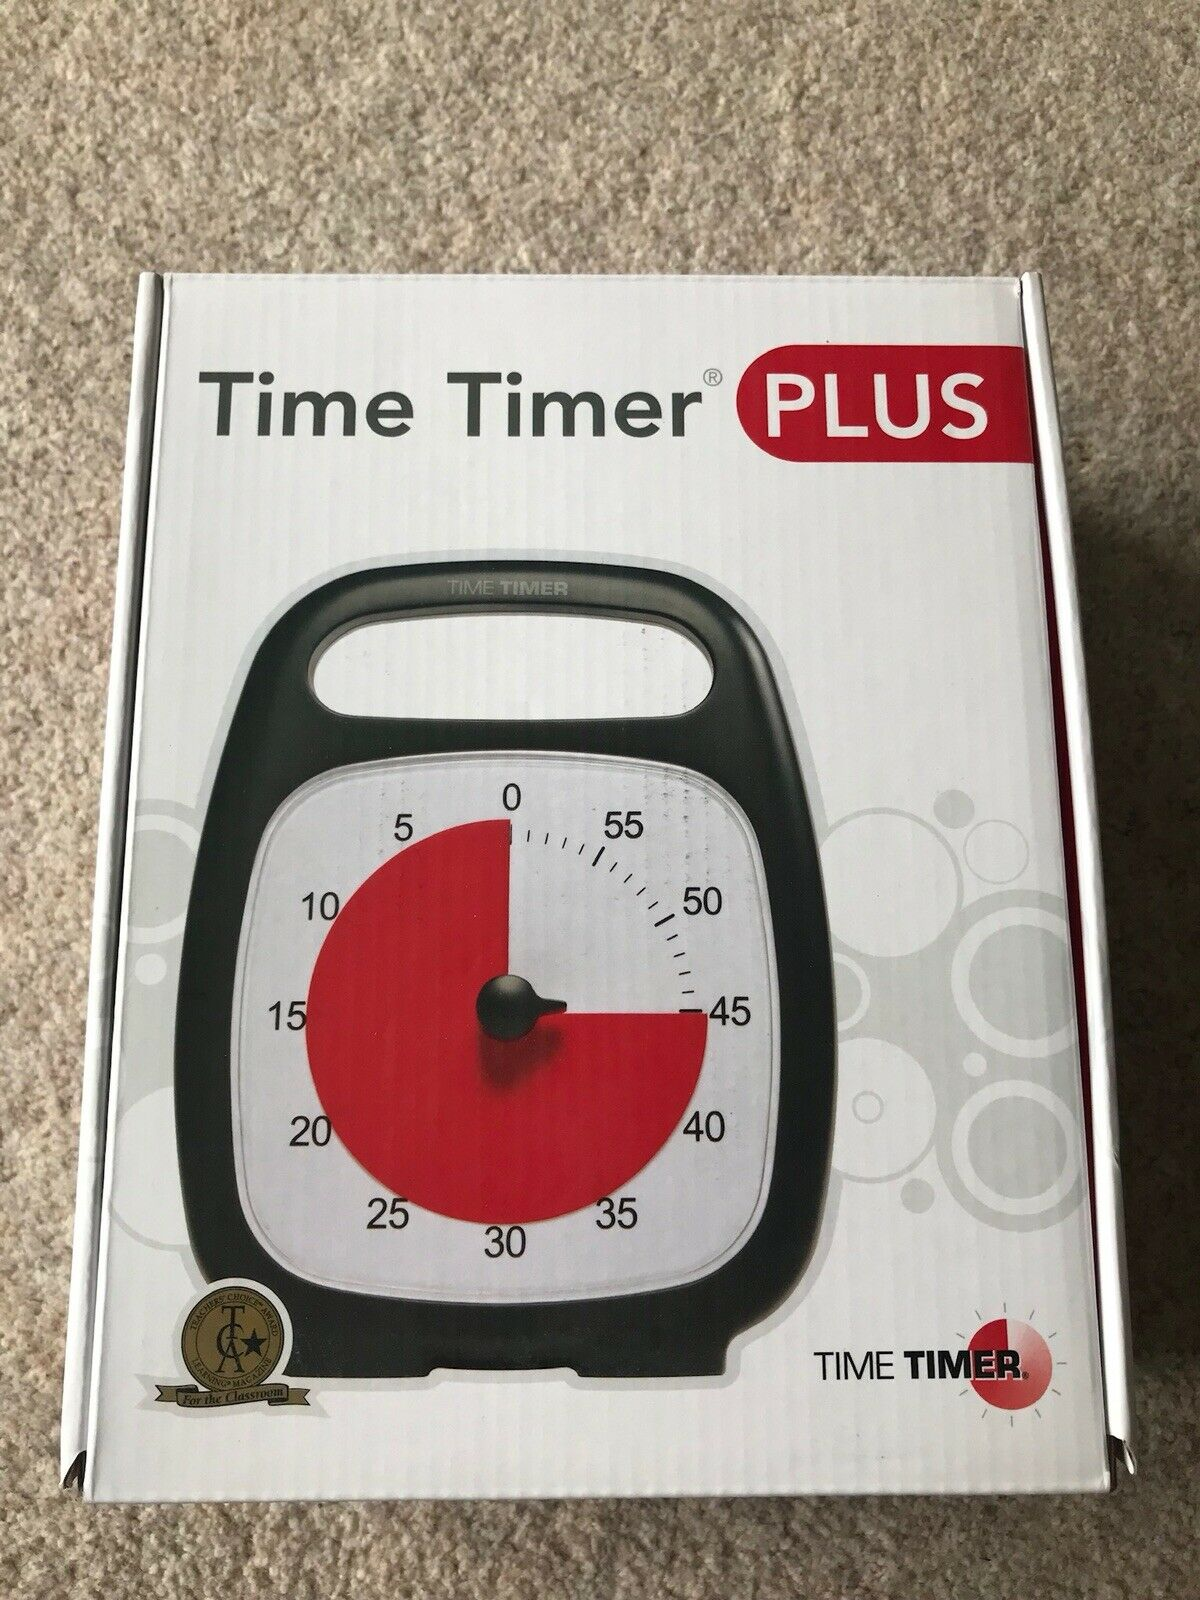 Time Timer Plus 60 minute visual timer classroom home special needs autism ADHD